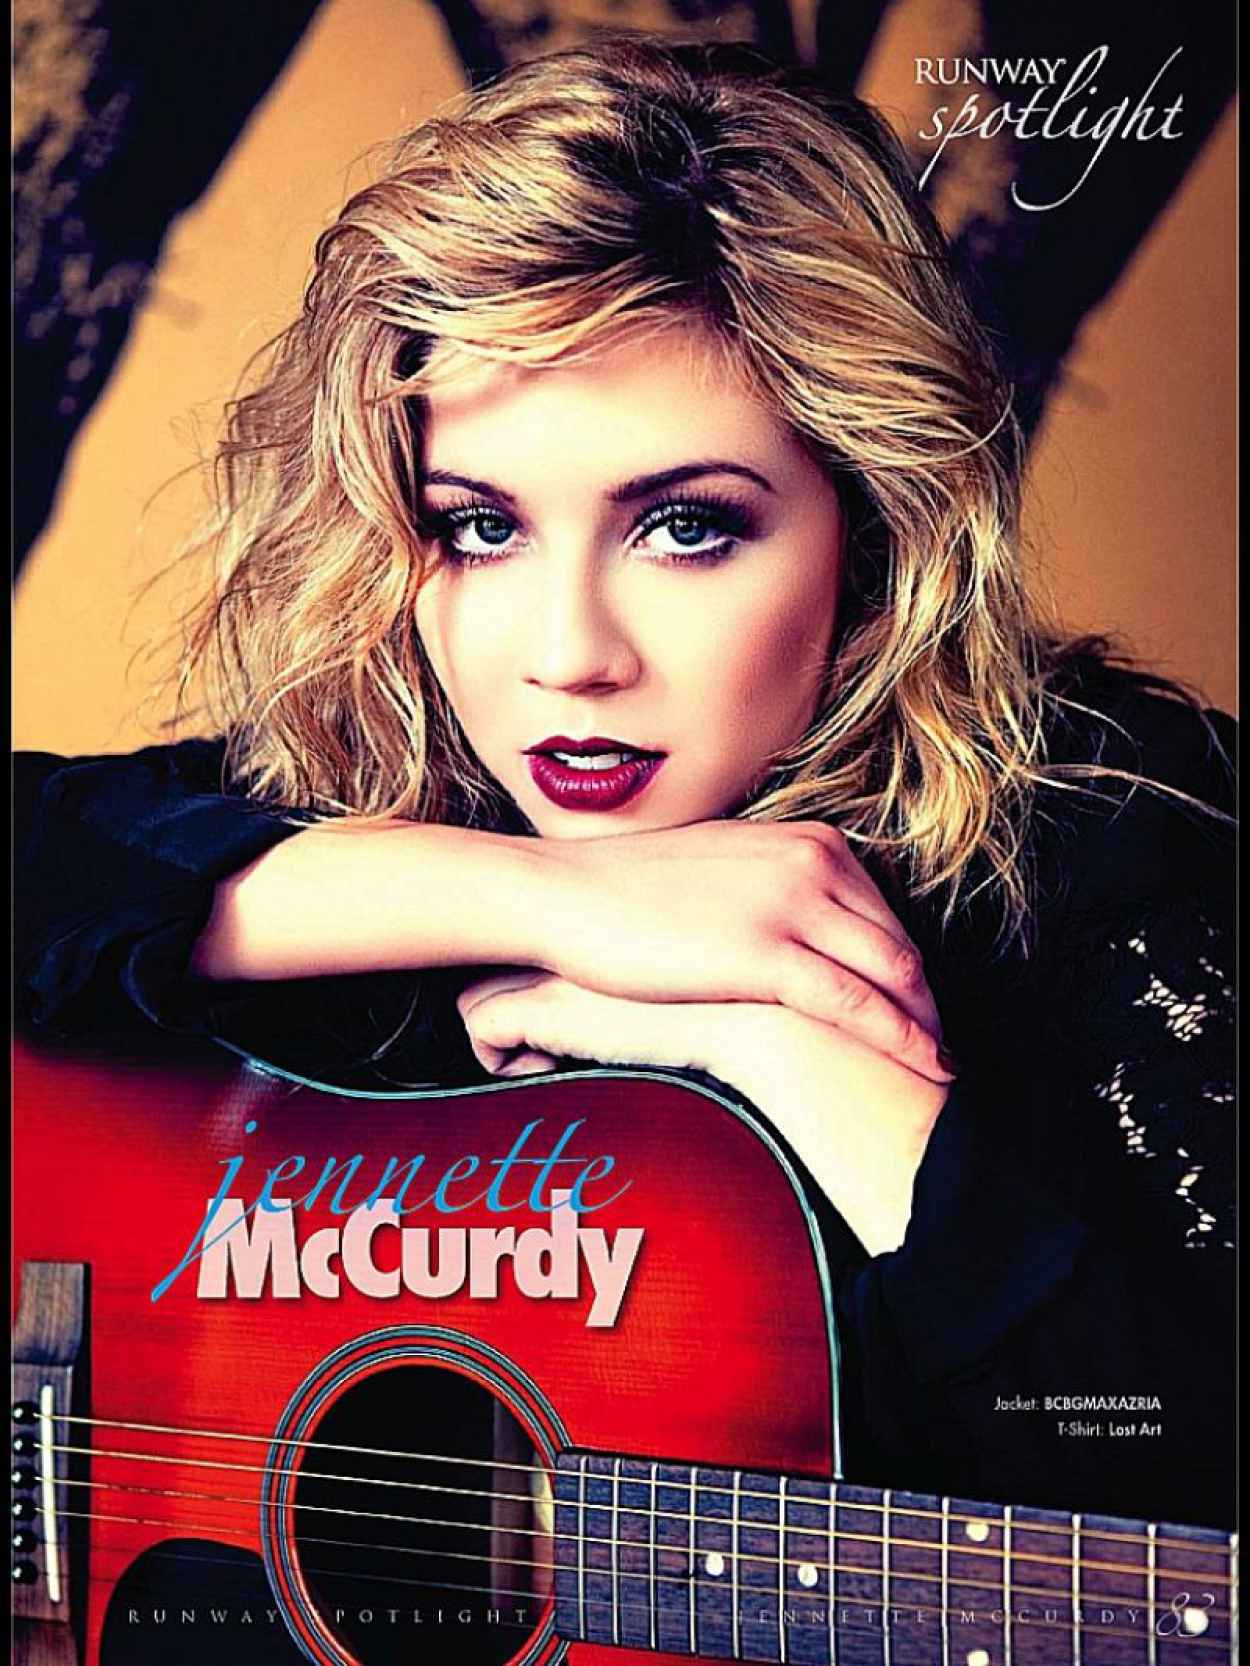 Jennette Mccurdy - RUNWAY Magazine - Winter 2015 Issue-1